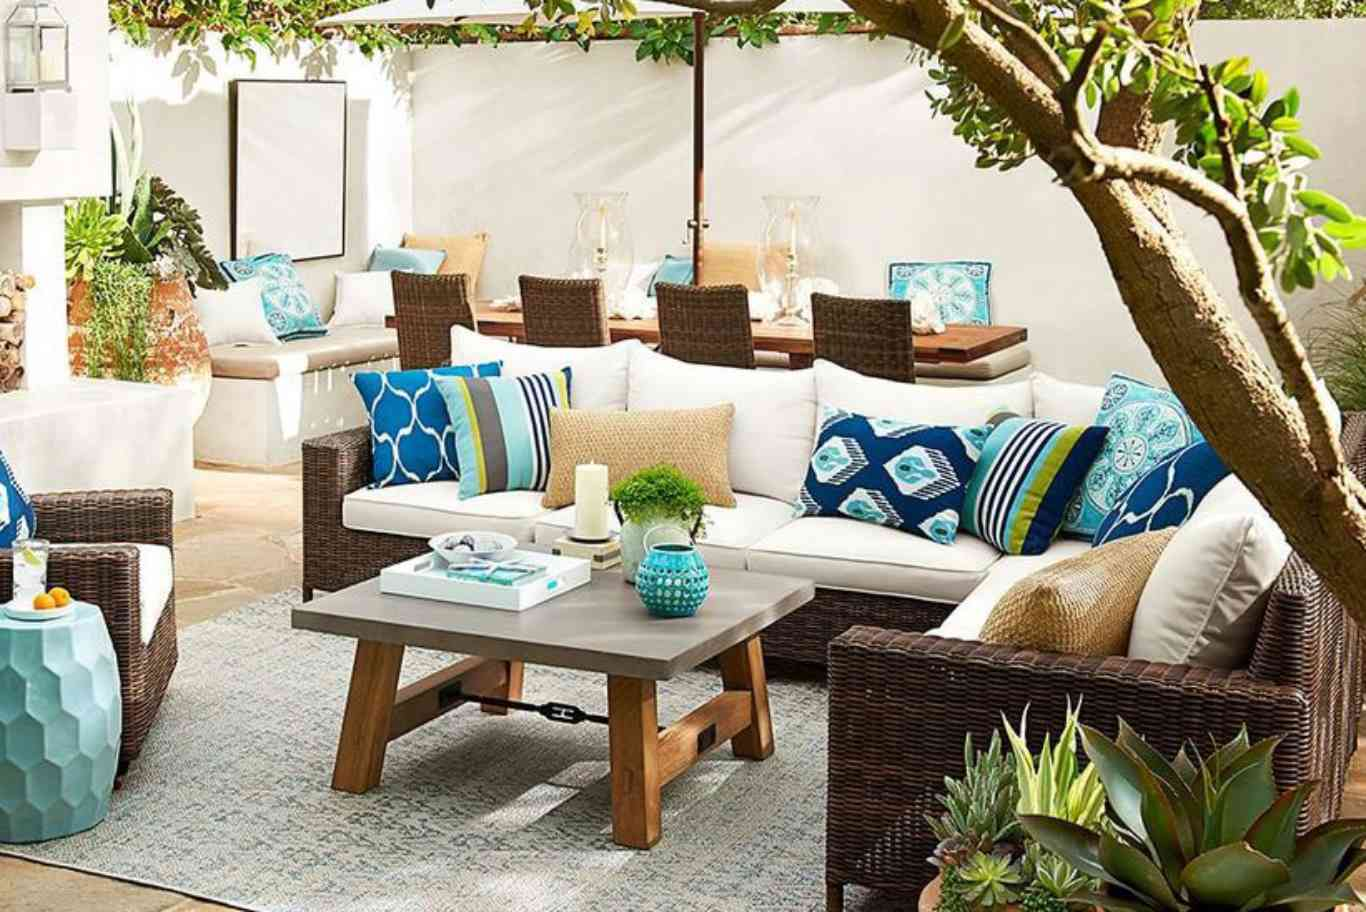 Tendencias en decoraci n para el verano a renovar tu for Tendencias decoracion 2017